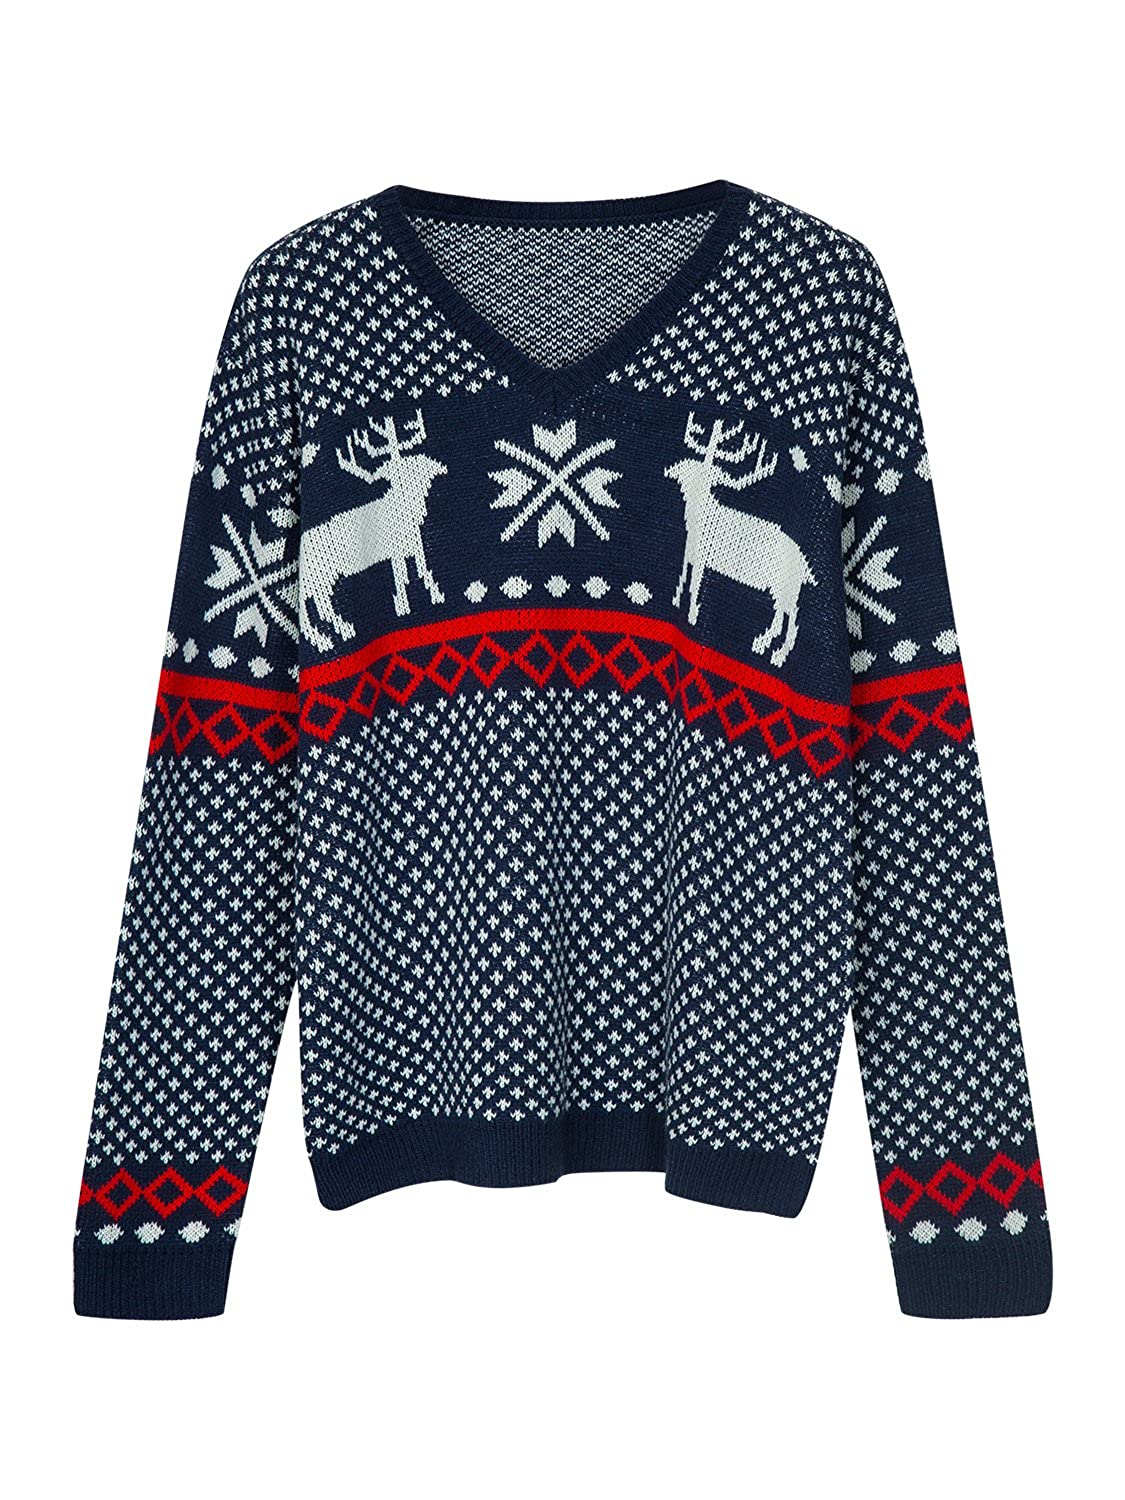 Men's Vintage Sweaters – 1920s to 1960s Retro Jumpers Choies Mens Ugly Christmas Sweater Fashion Christmas Sweater With Snowflake Pattern $29.99 AT vintagedancer.com